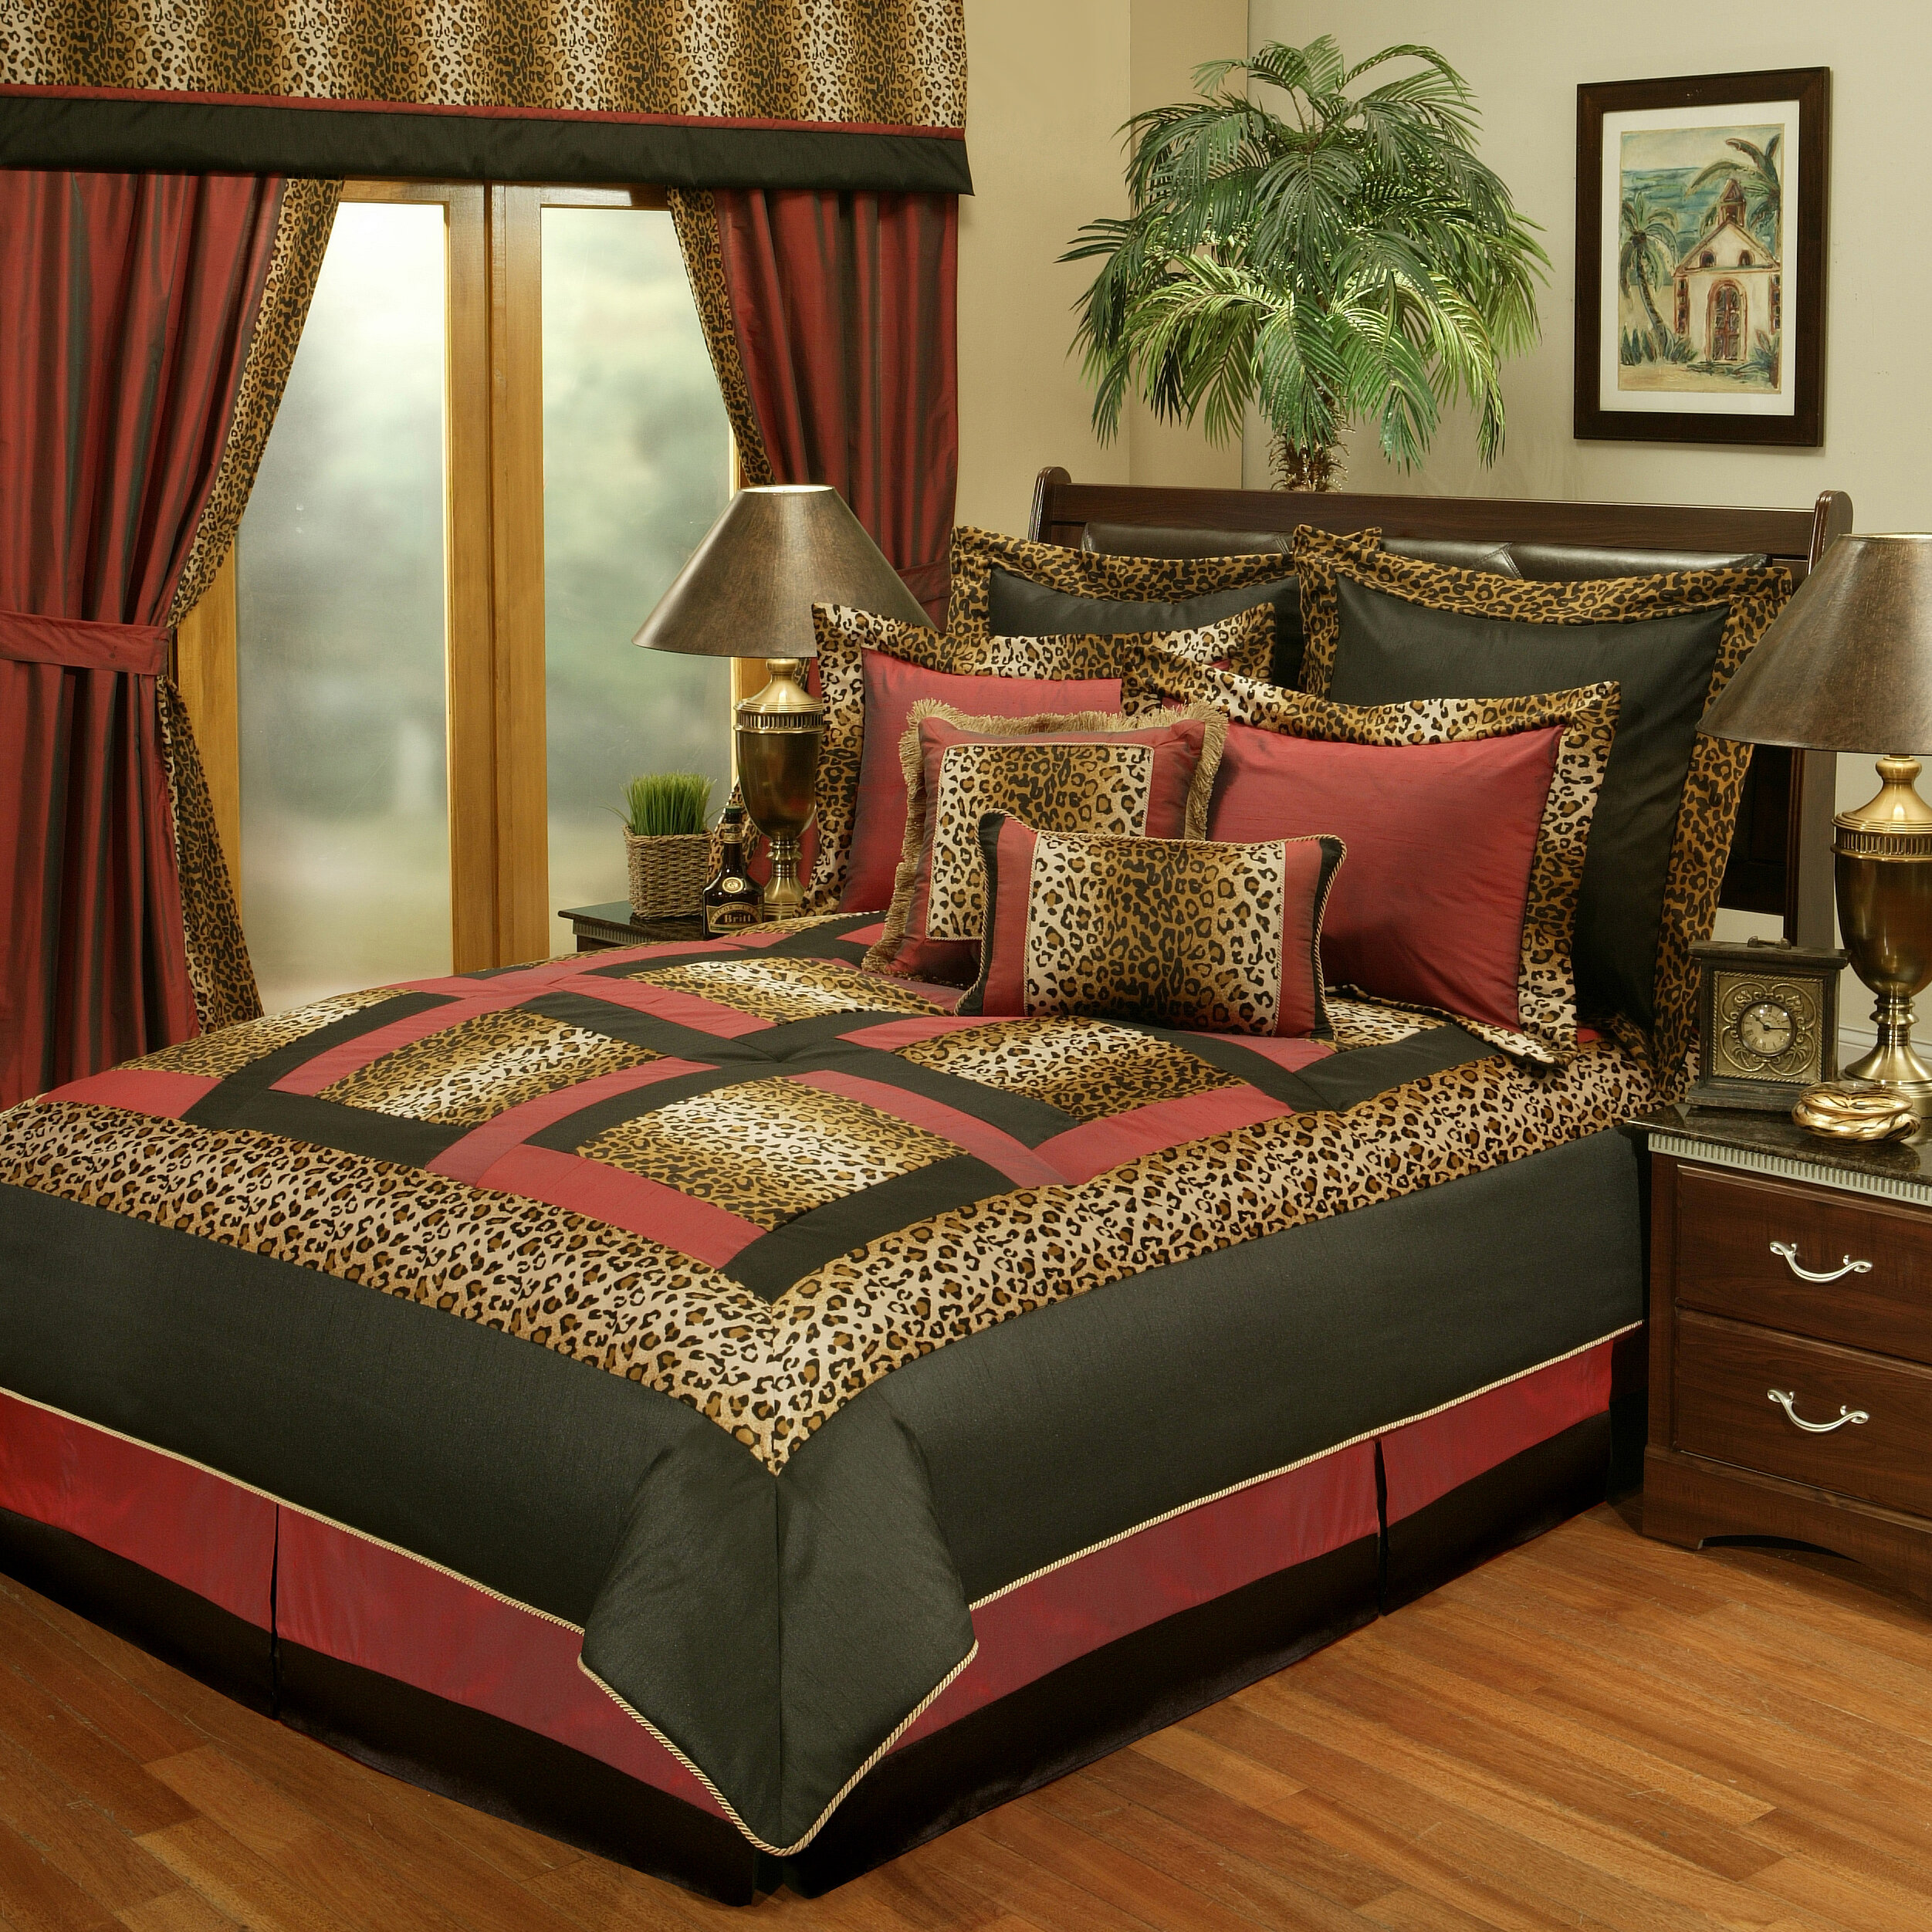 Genial Sherry Kline Jungle Passage Cheetah 8 Piece Reversible Comforter Set U0026  Reviews | Wayfair